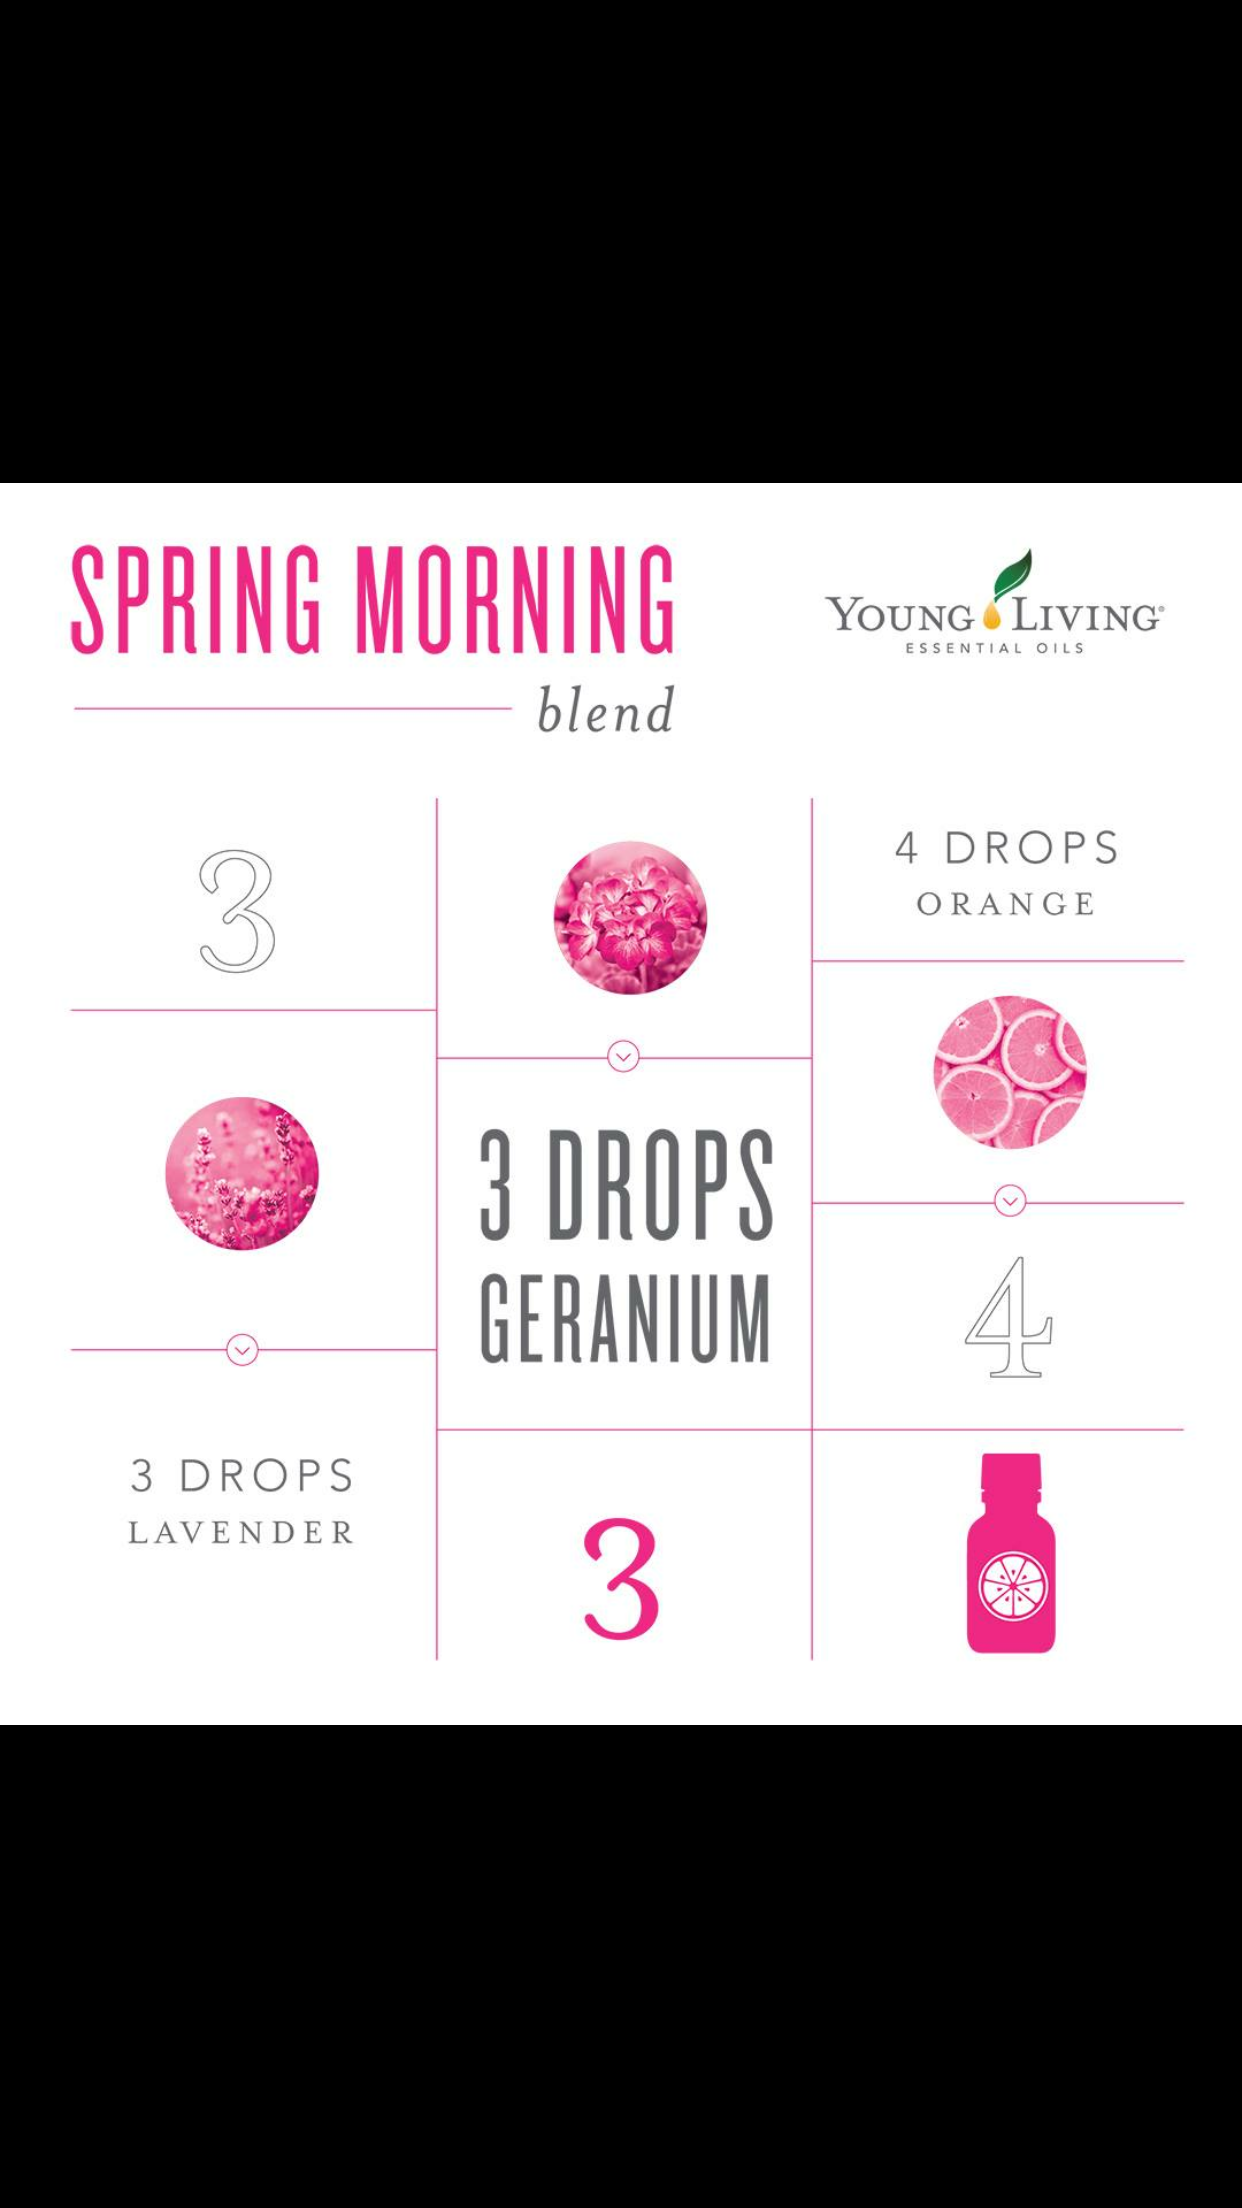 Spring Morning Blend